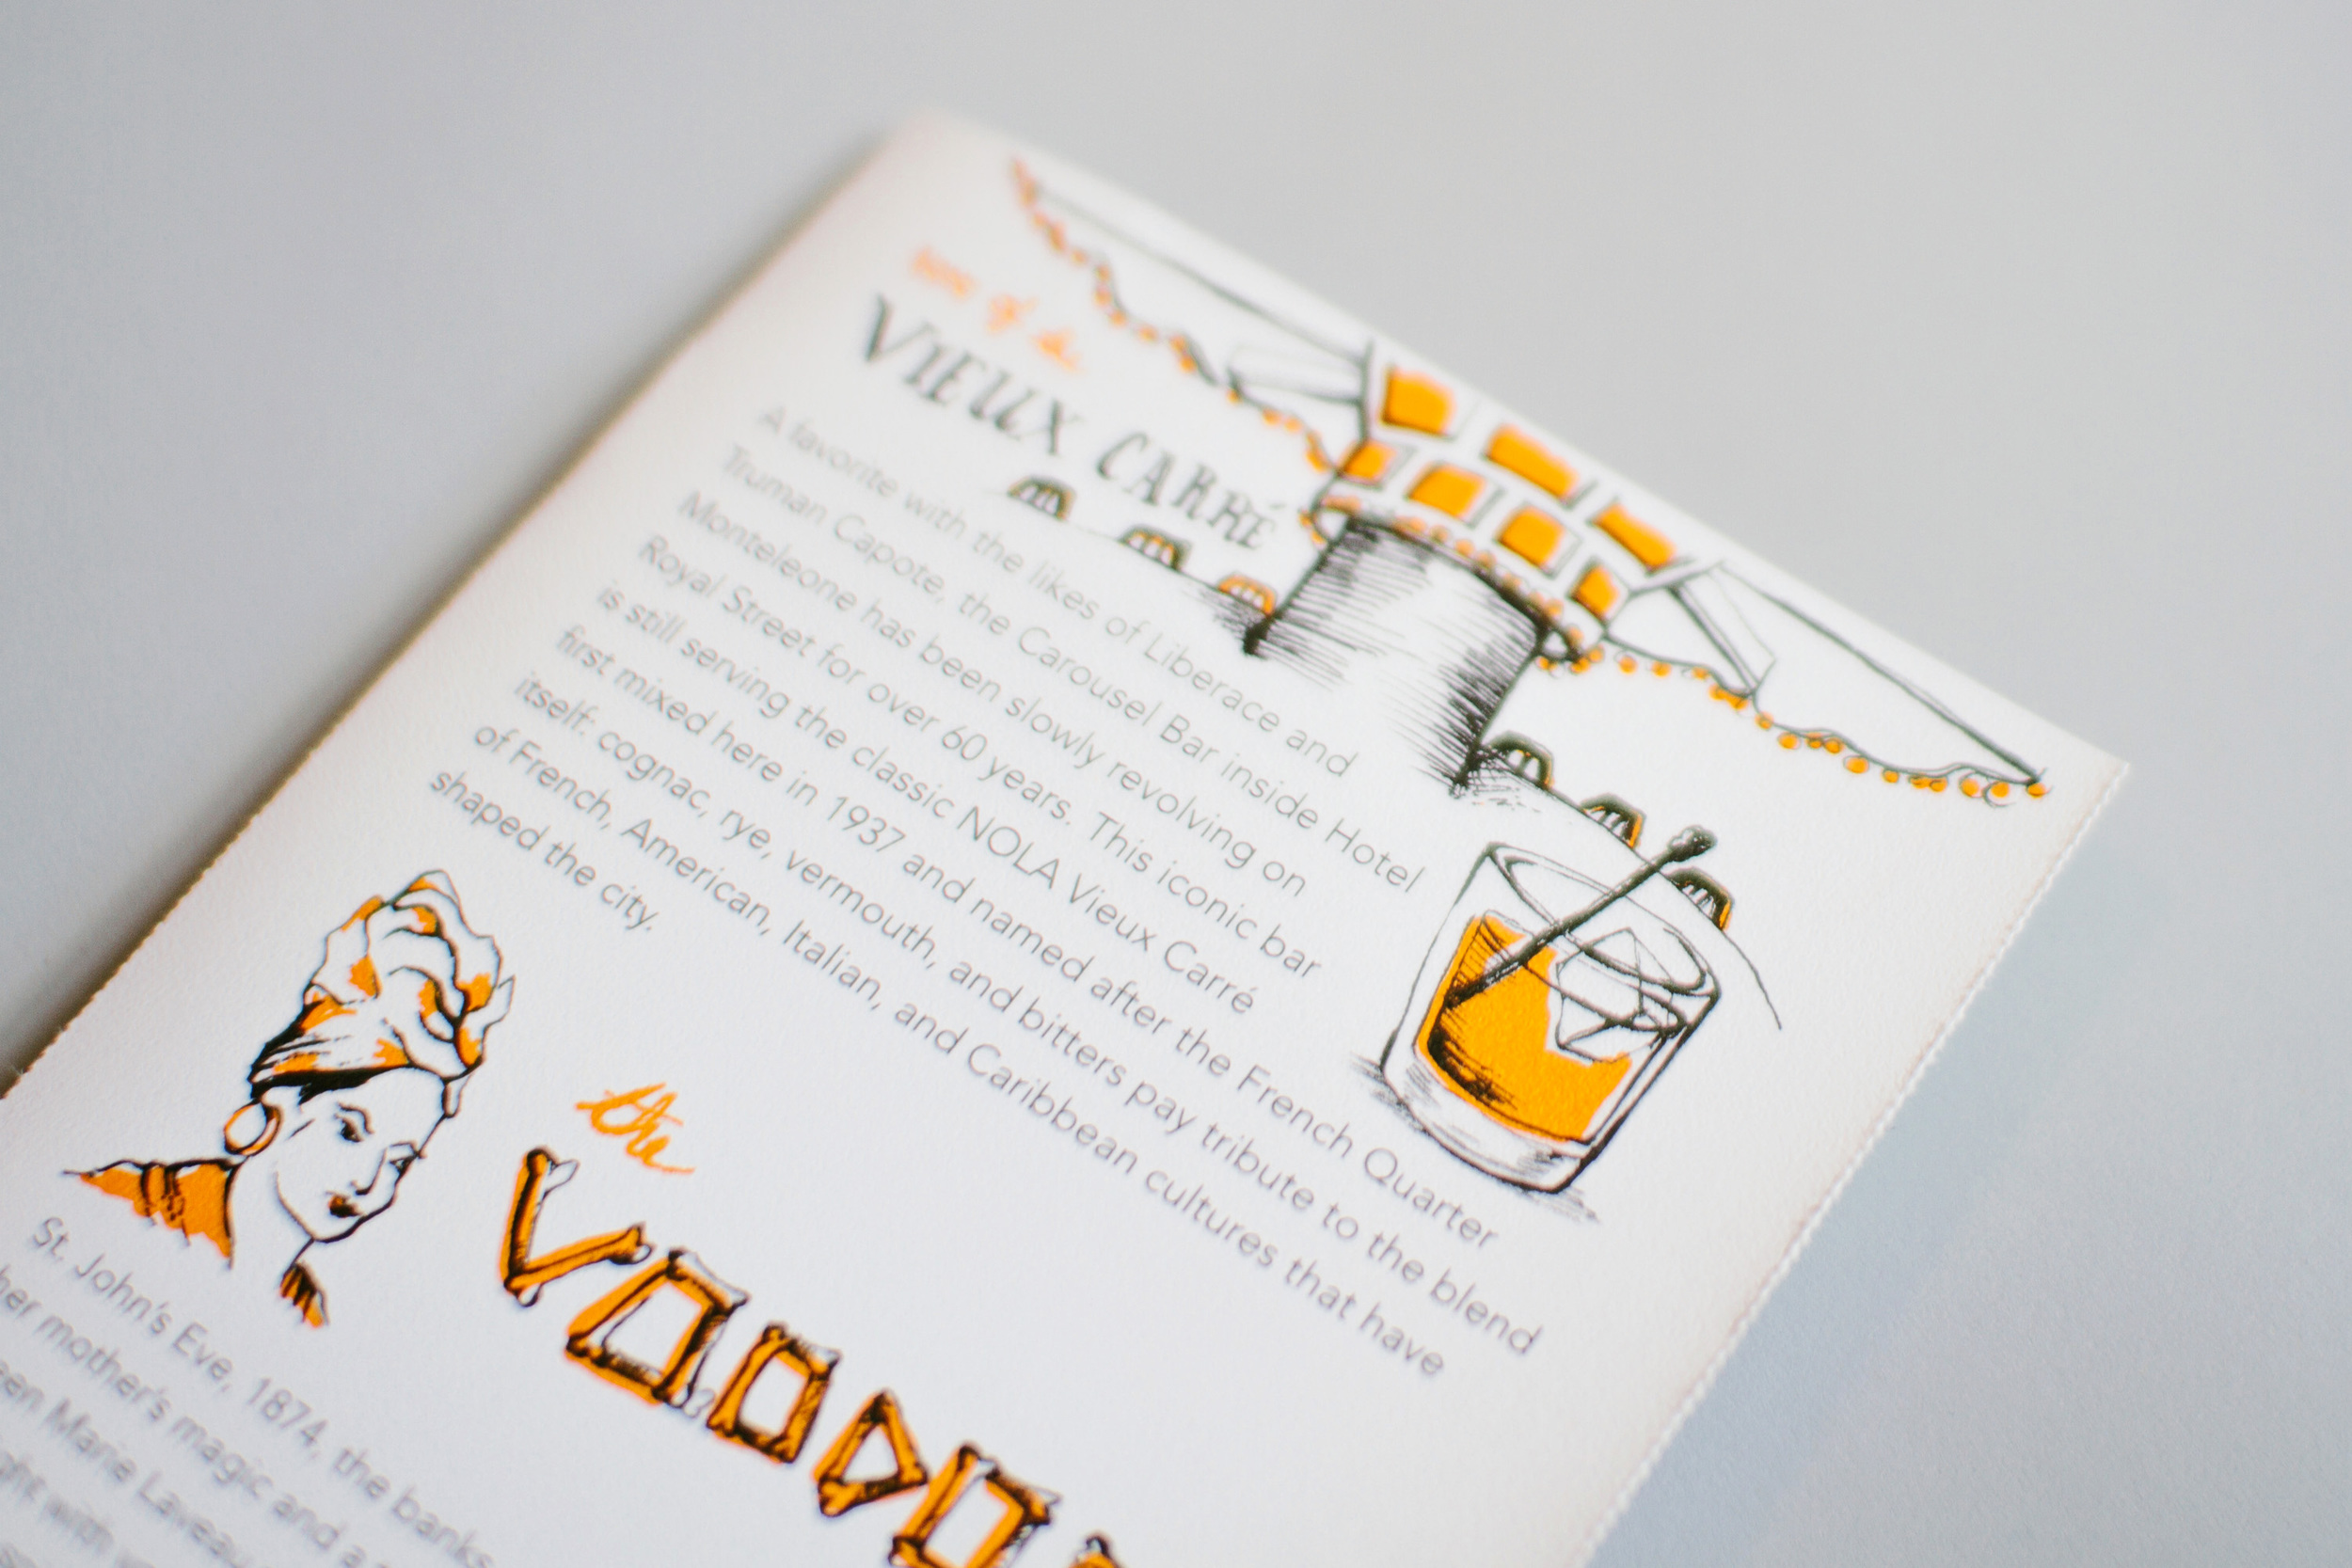 Illustrated Vieux Carre cocktail history, created at the Carousel Bar in New Orleans. The backs of each map also featured fun facts and historical and cultural information about New Orleans.